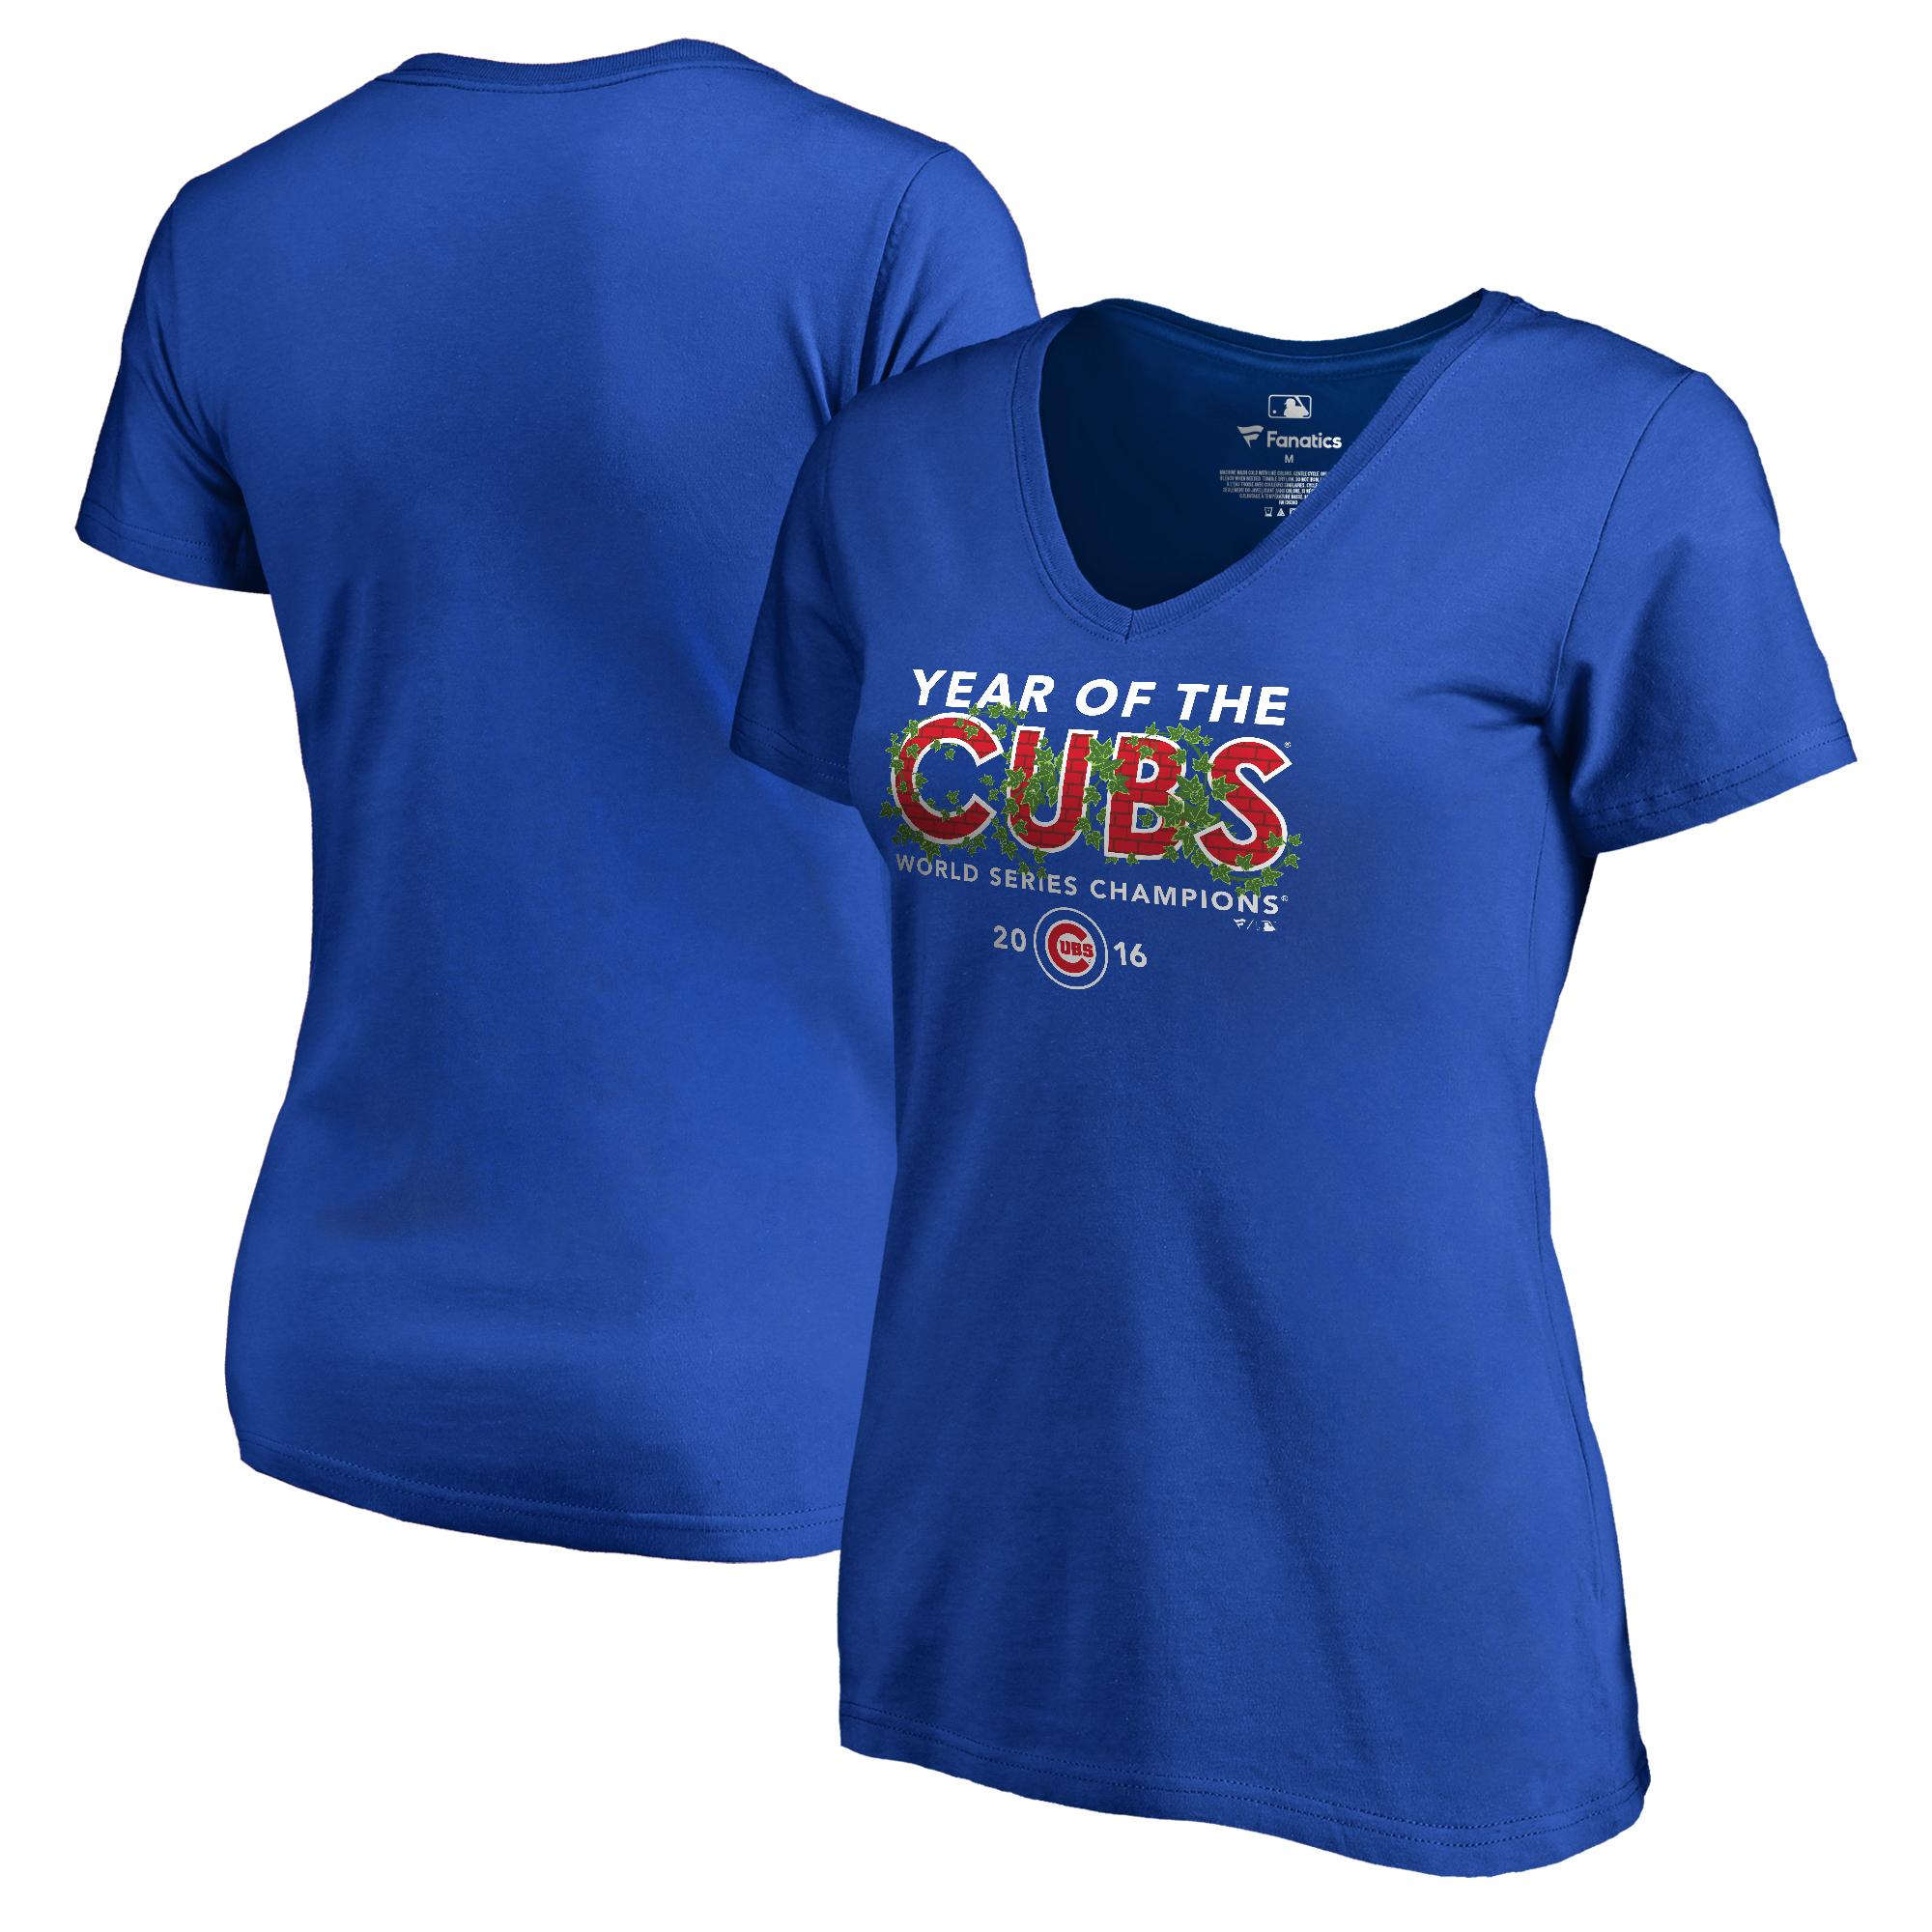 Chicago Cubs Women's 2016 World Series Champions Year of the Cubs T-Shirt - Royal